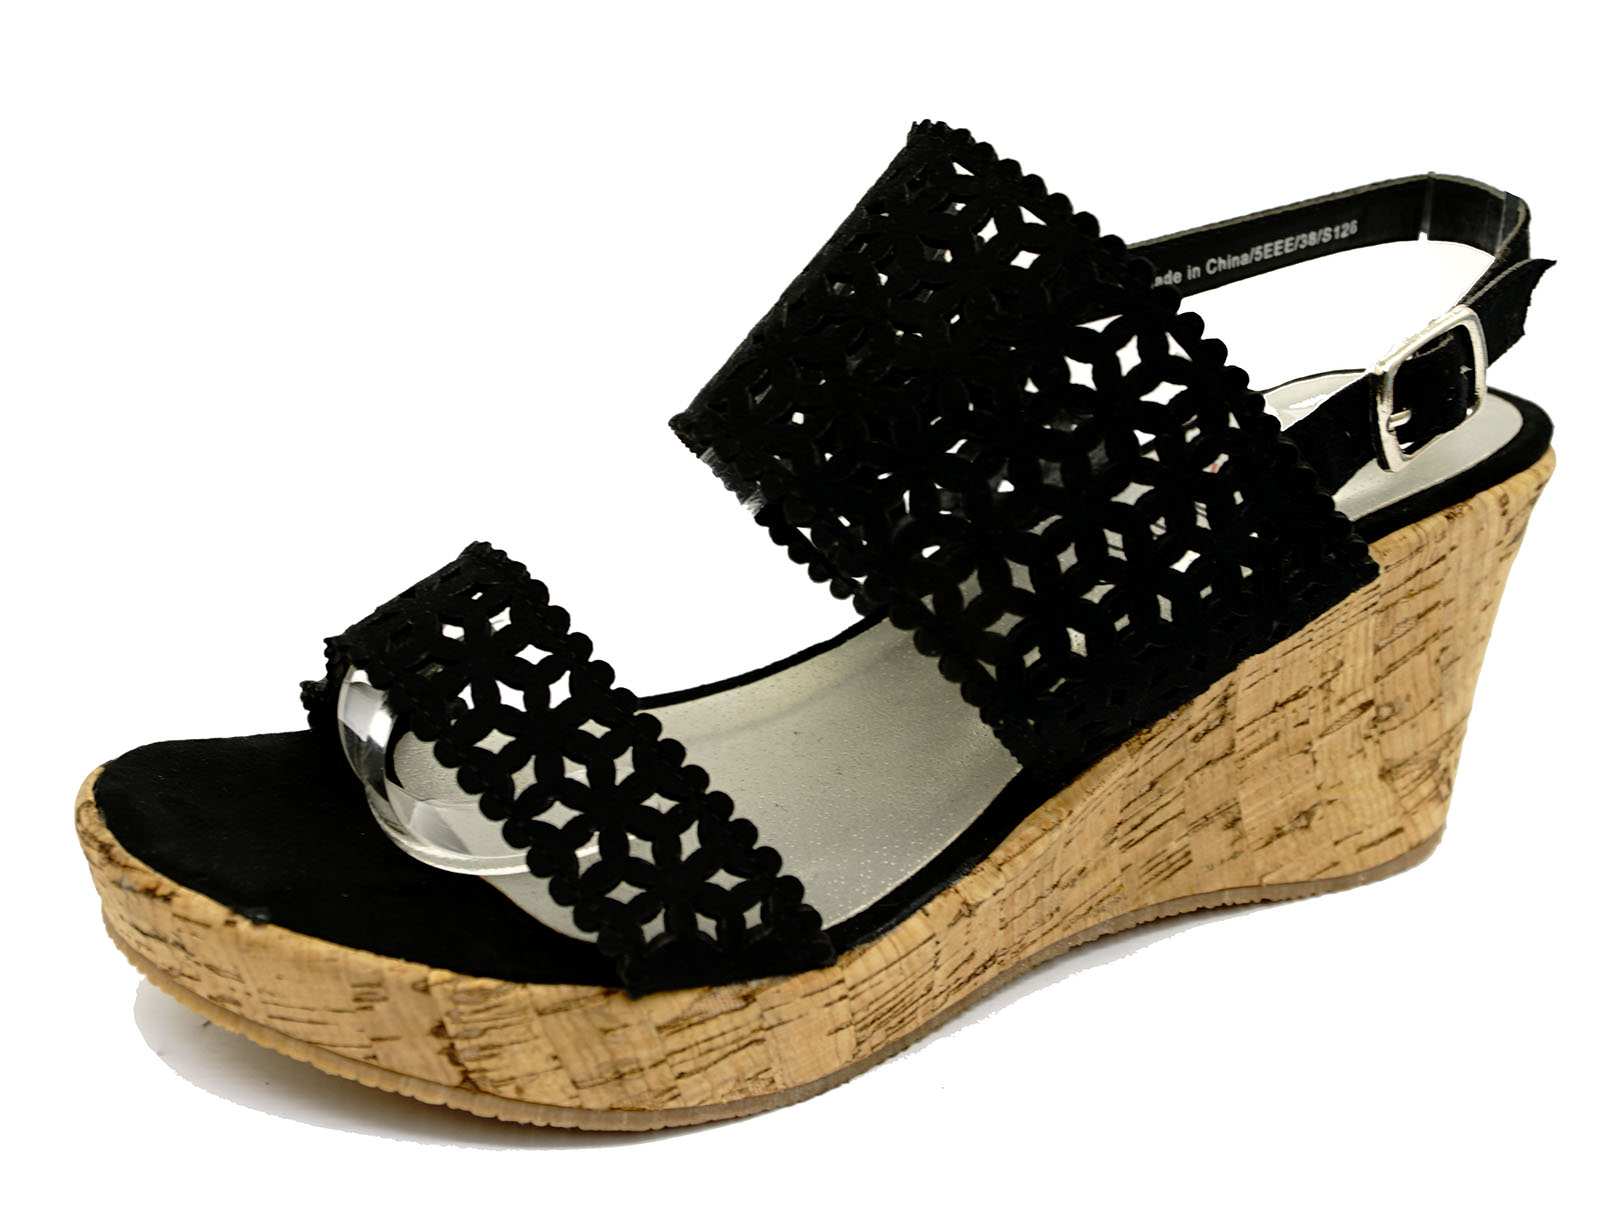 womens black wide fit eee wedge platform open toe strappy